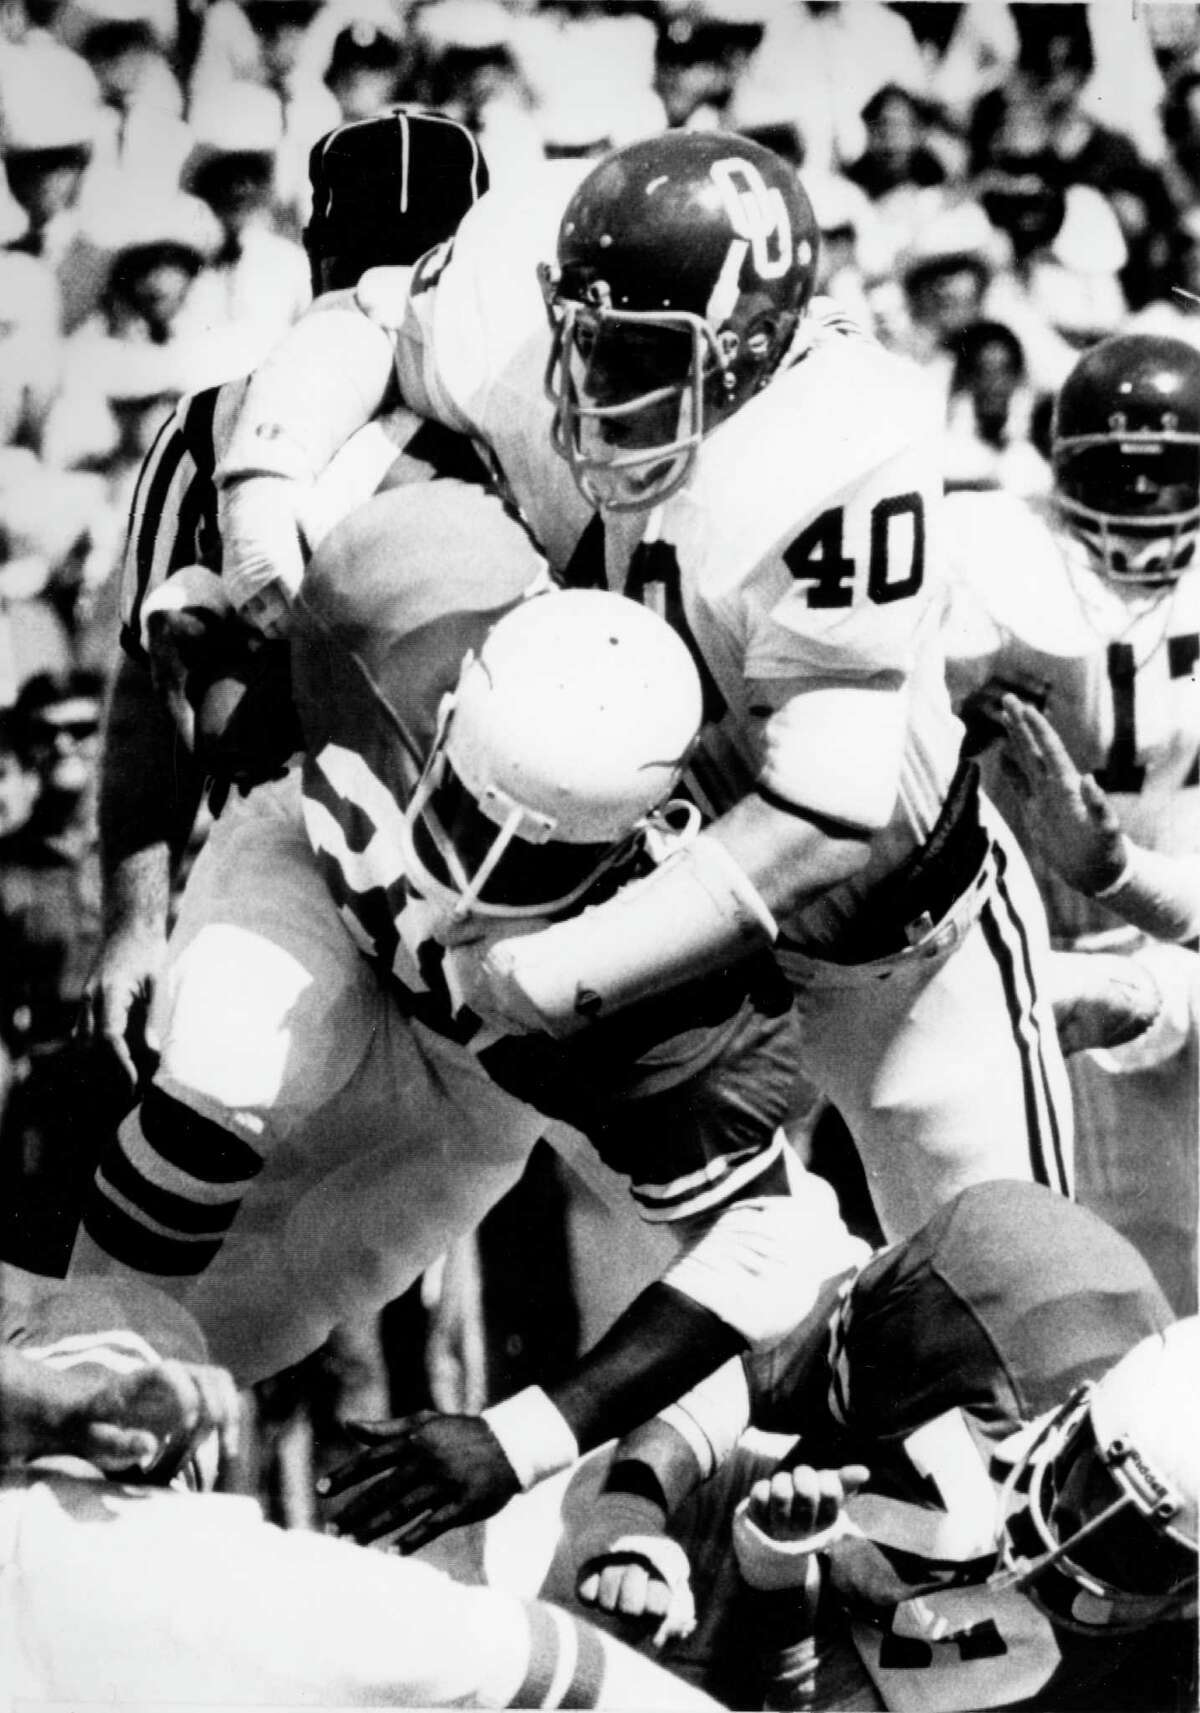 10/11/1975 - Texas Longhorns v Oklahoma Sooners. Longhorns running back Earl Campbell (20) is stopped by Sooners Bill Dalke (40) for a 3-yard gain up the middle in the first quarter in Cotton Bowl stadium in Dallas.